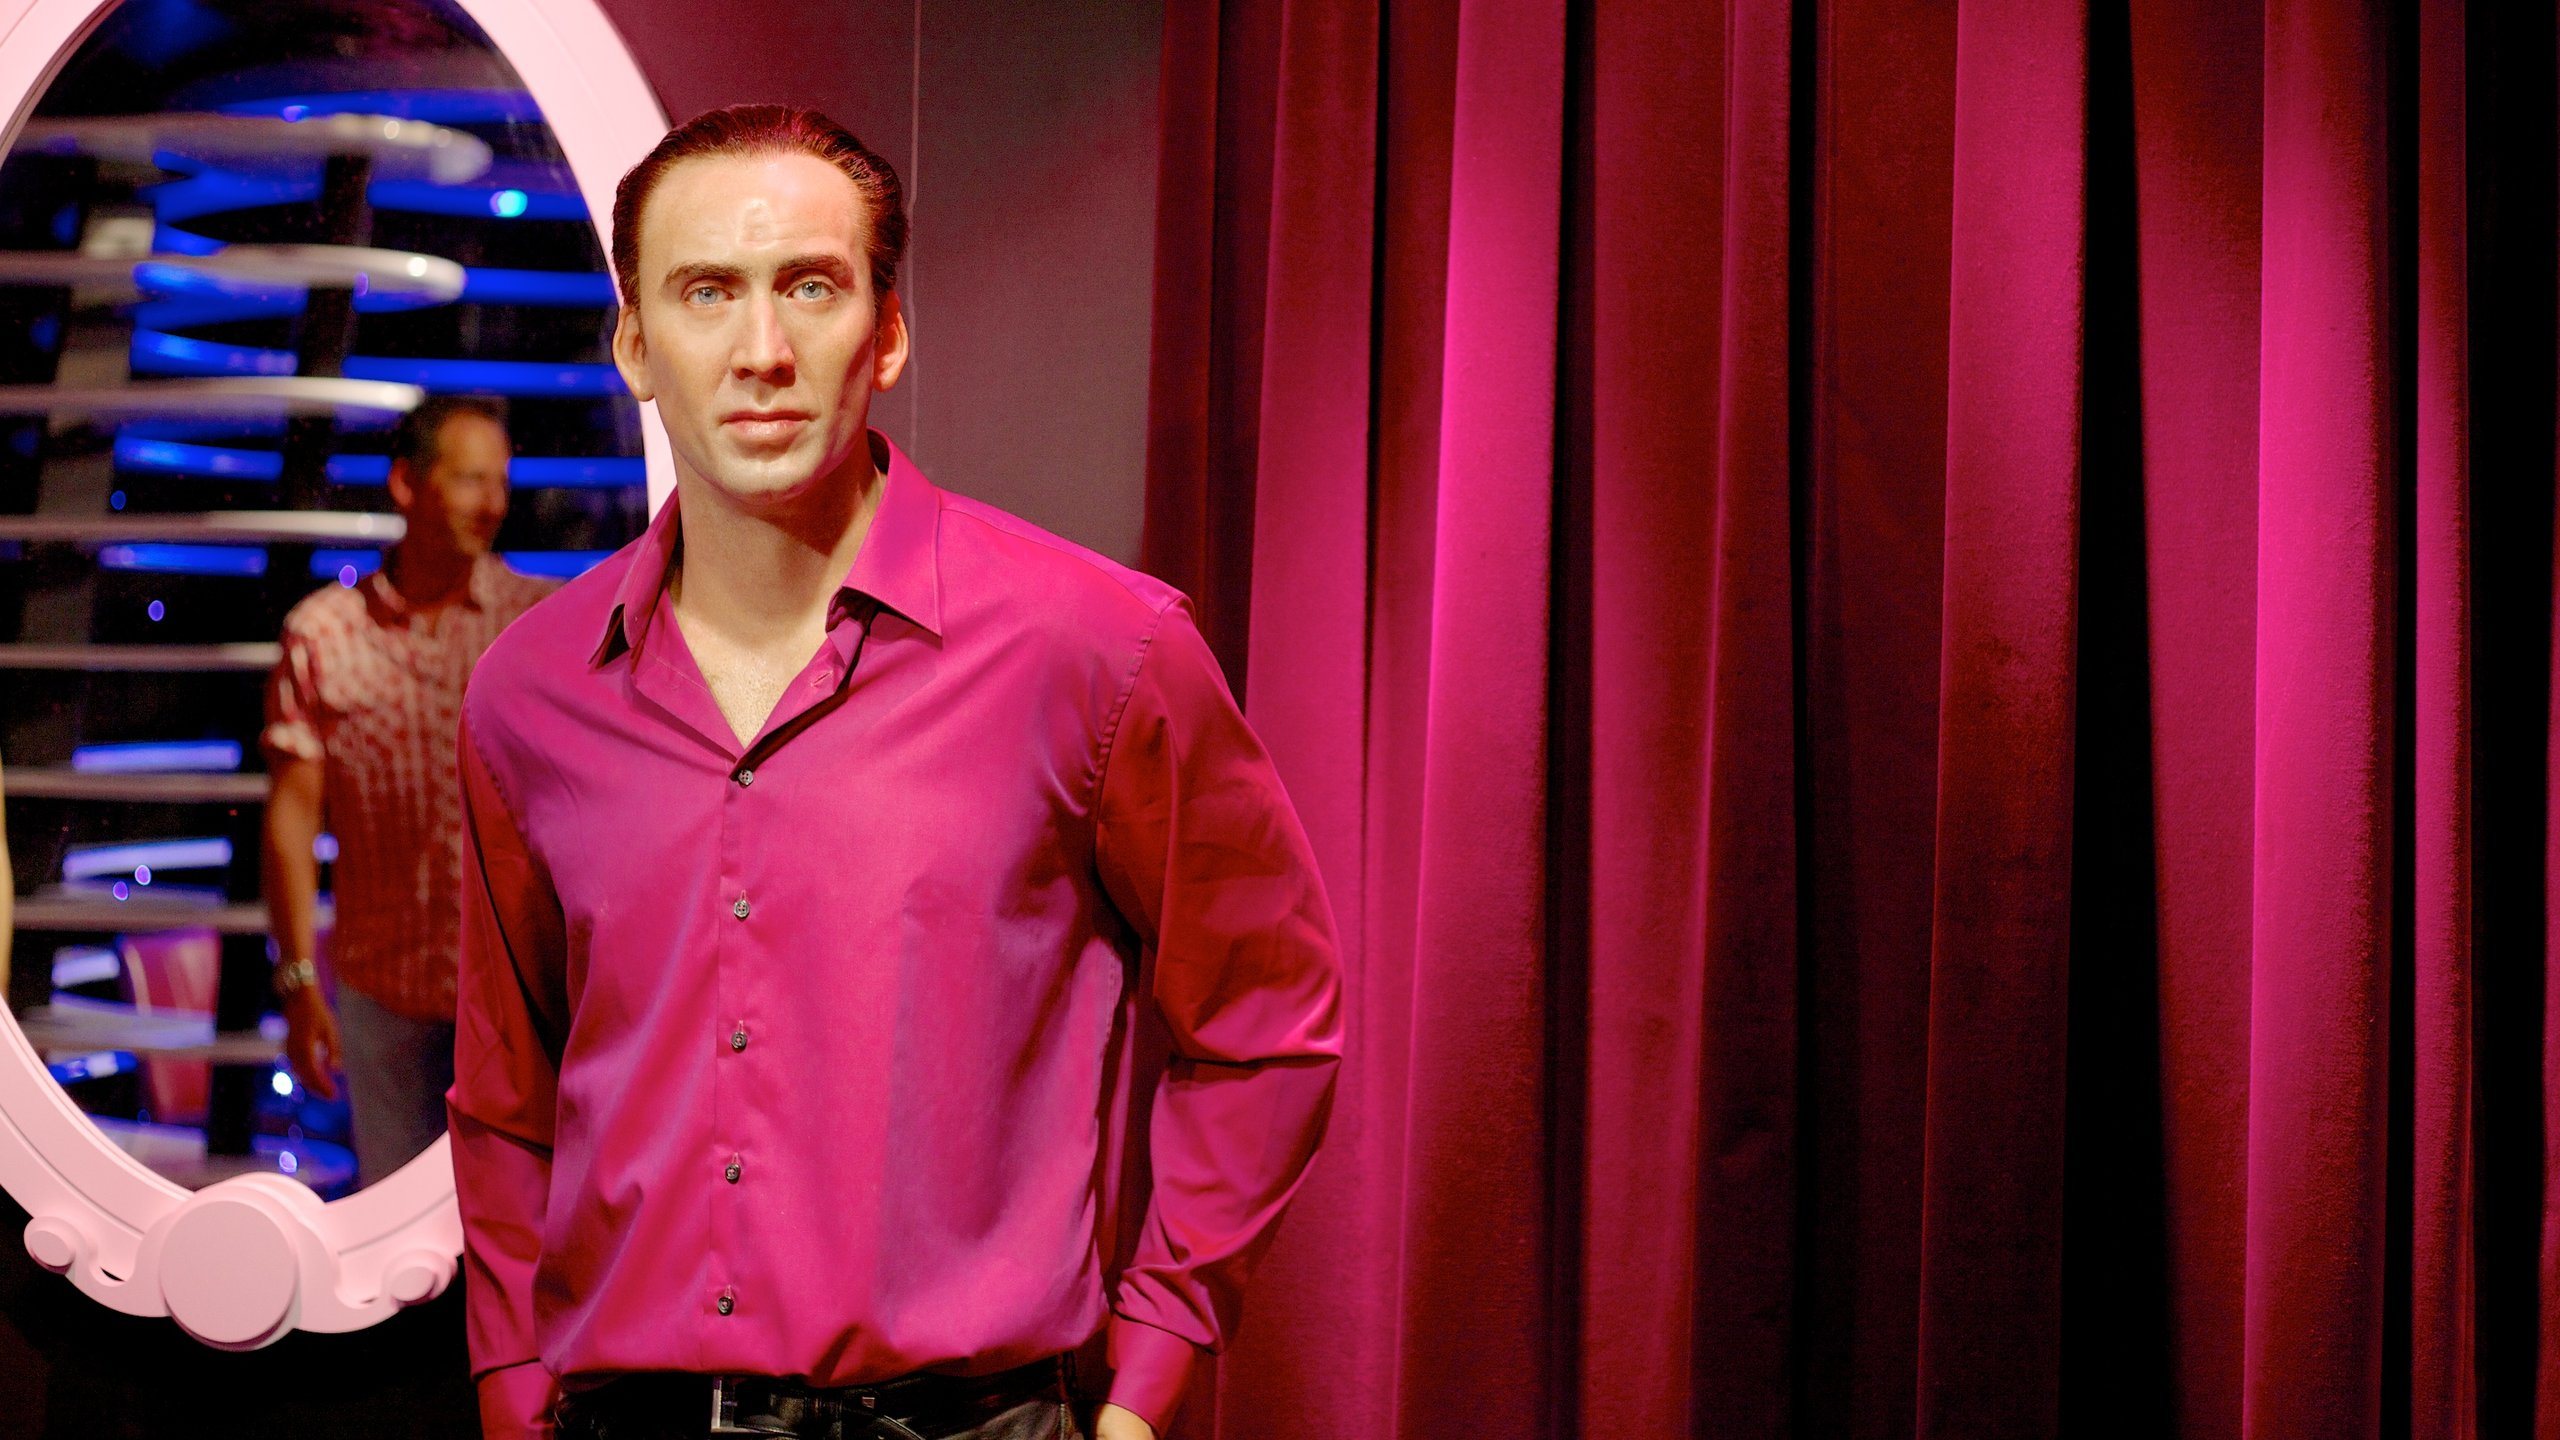 Rub shoulders with your favourite celebrities and sports stars at this world-famous interactive waxworks exhibition.